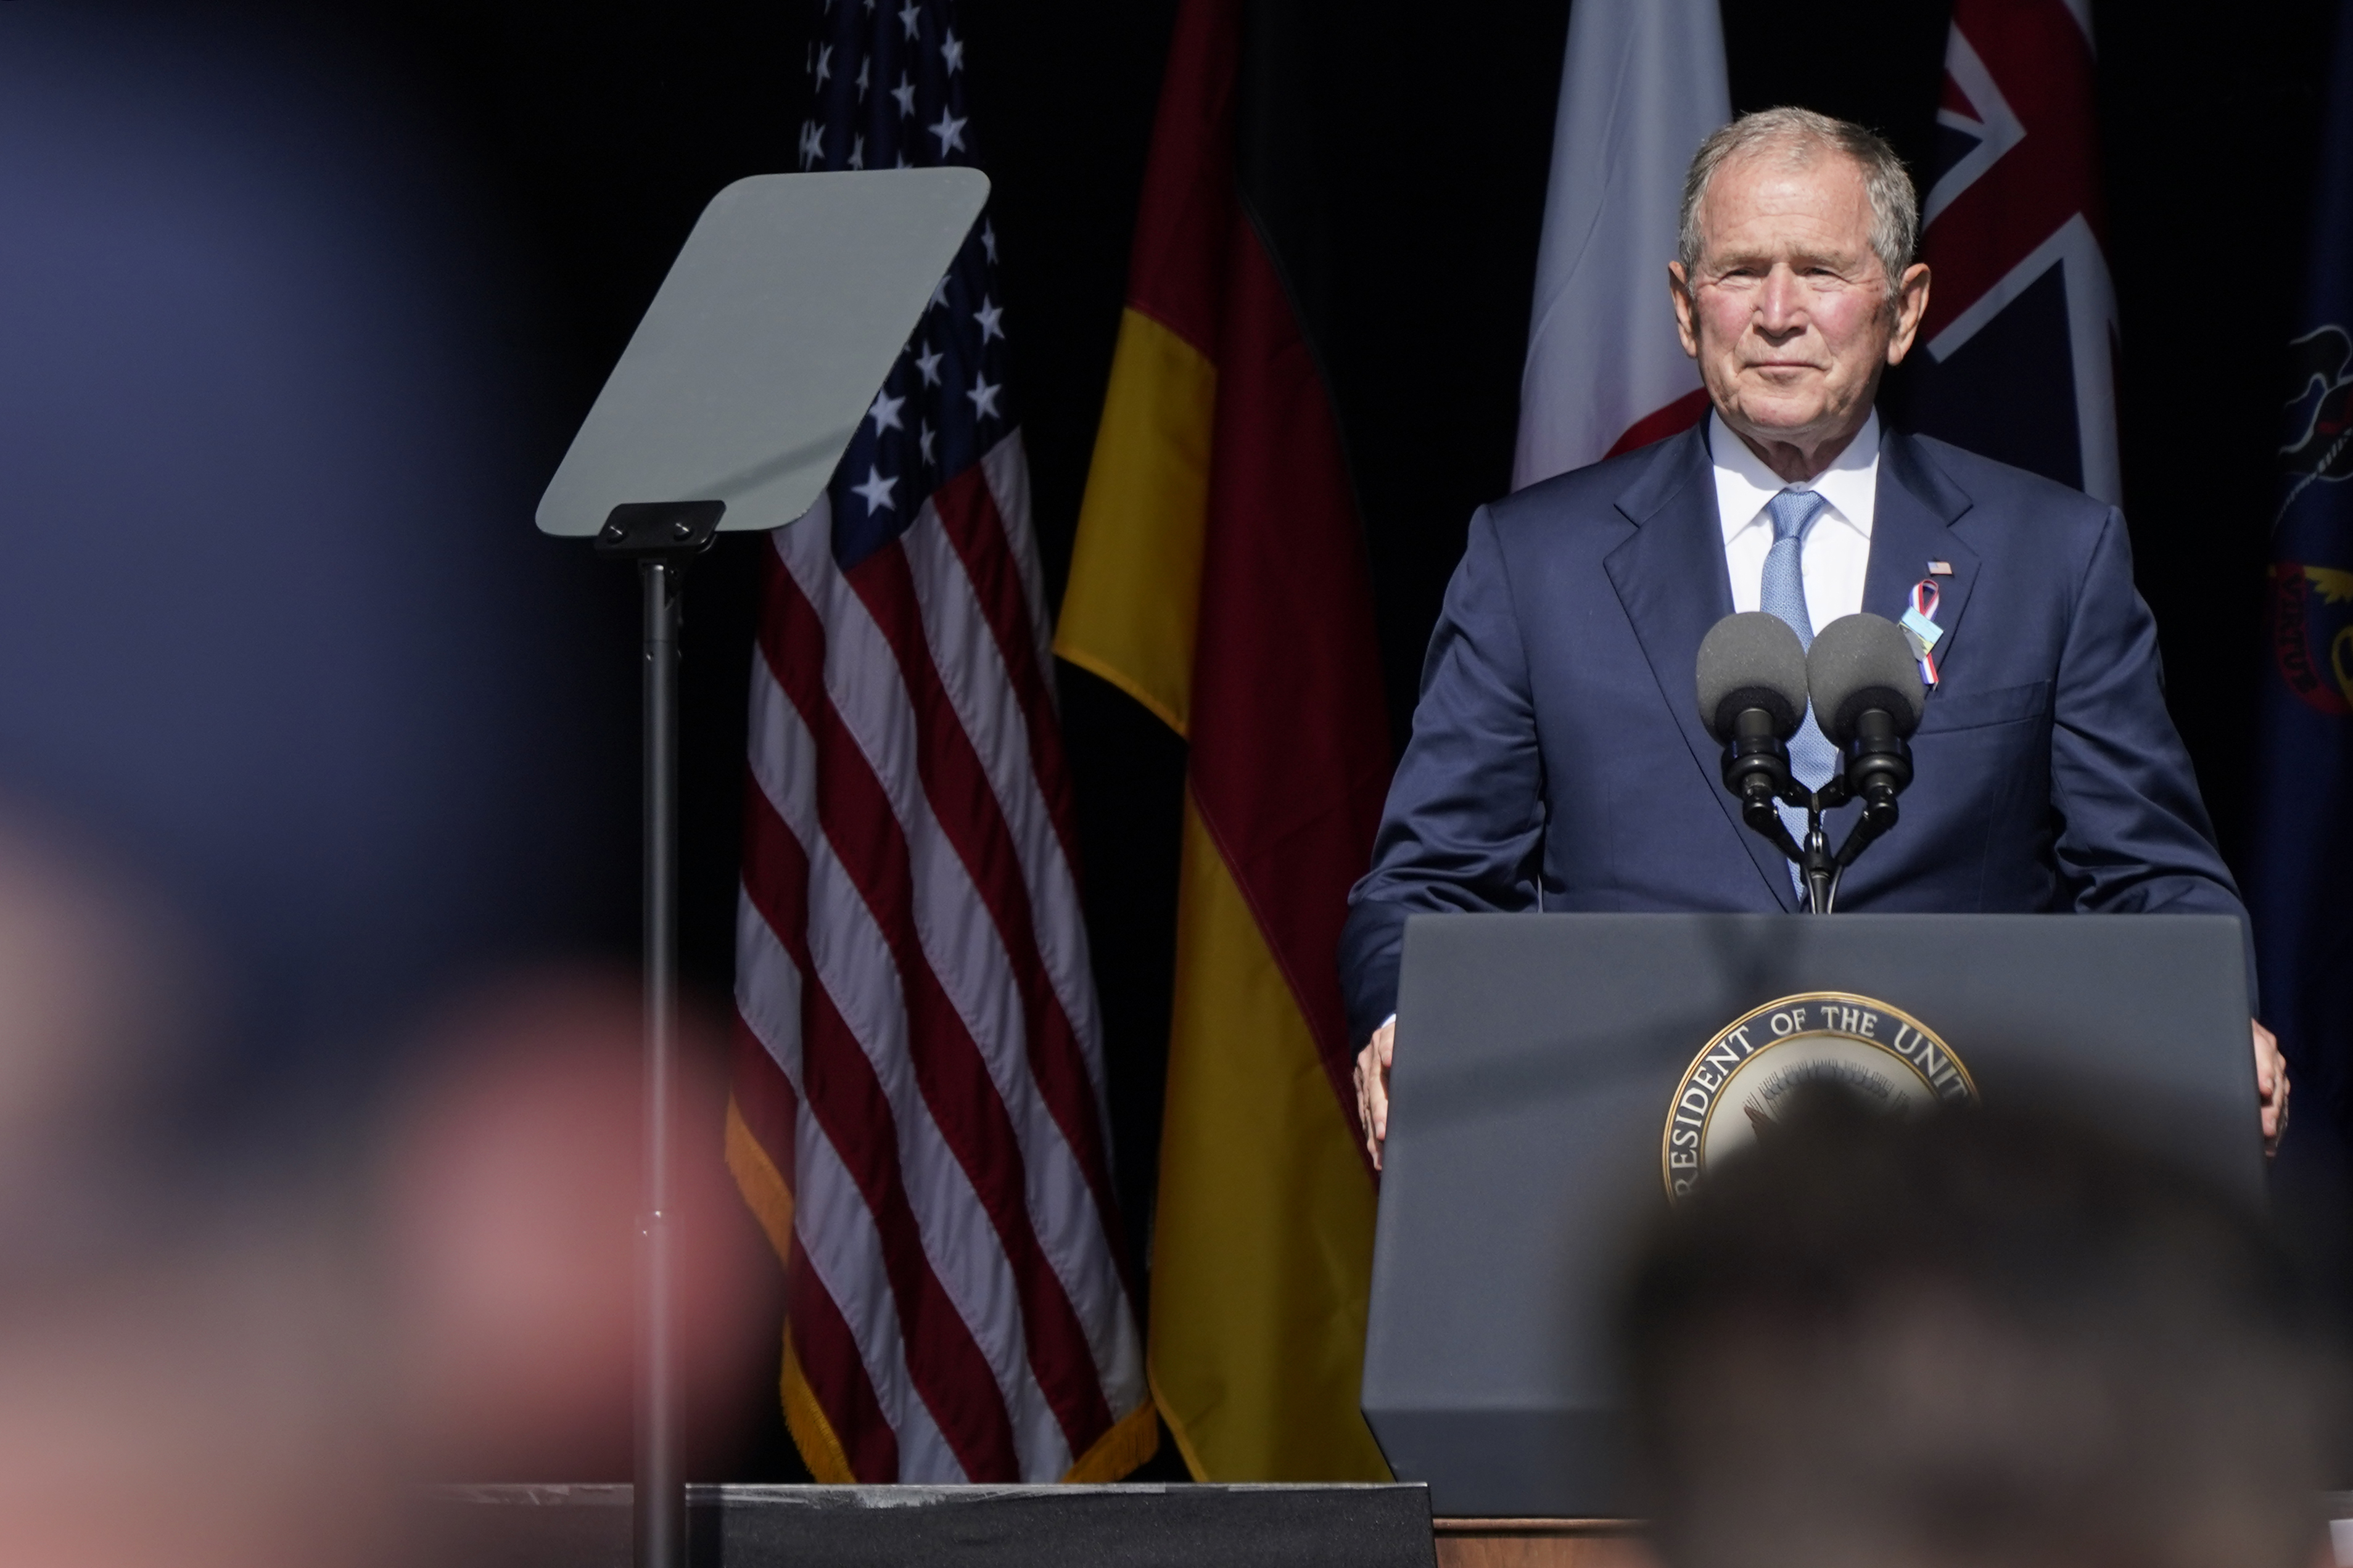 Former President George W. Bush speaks during a memorial for the passengers and crew of United Flight 93, on Sept. 11, 2021, in Shanksville, Pa., on the 20th anniversary of the Sept. 11, 2001 attacks.